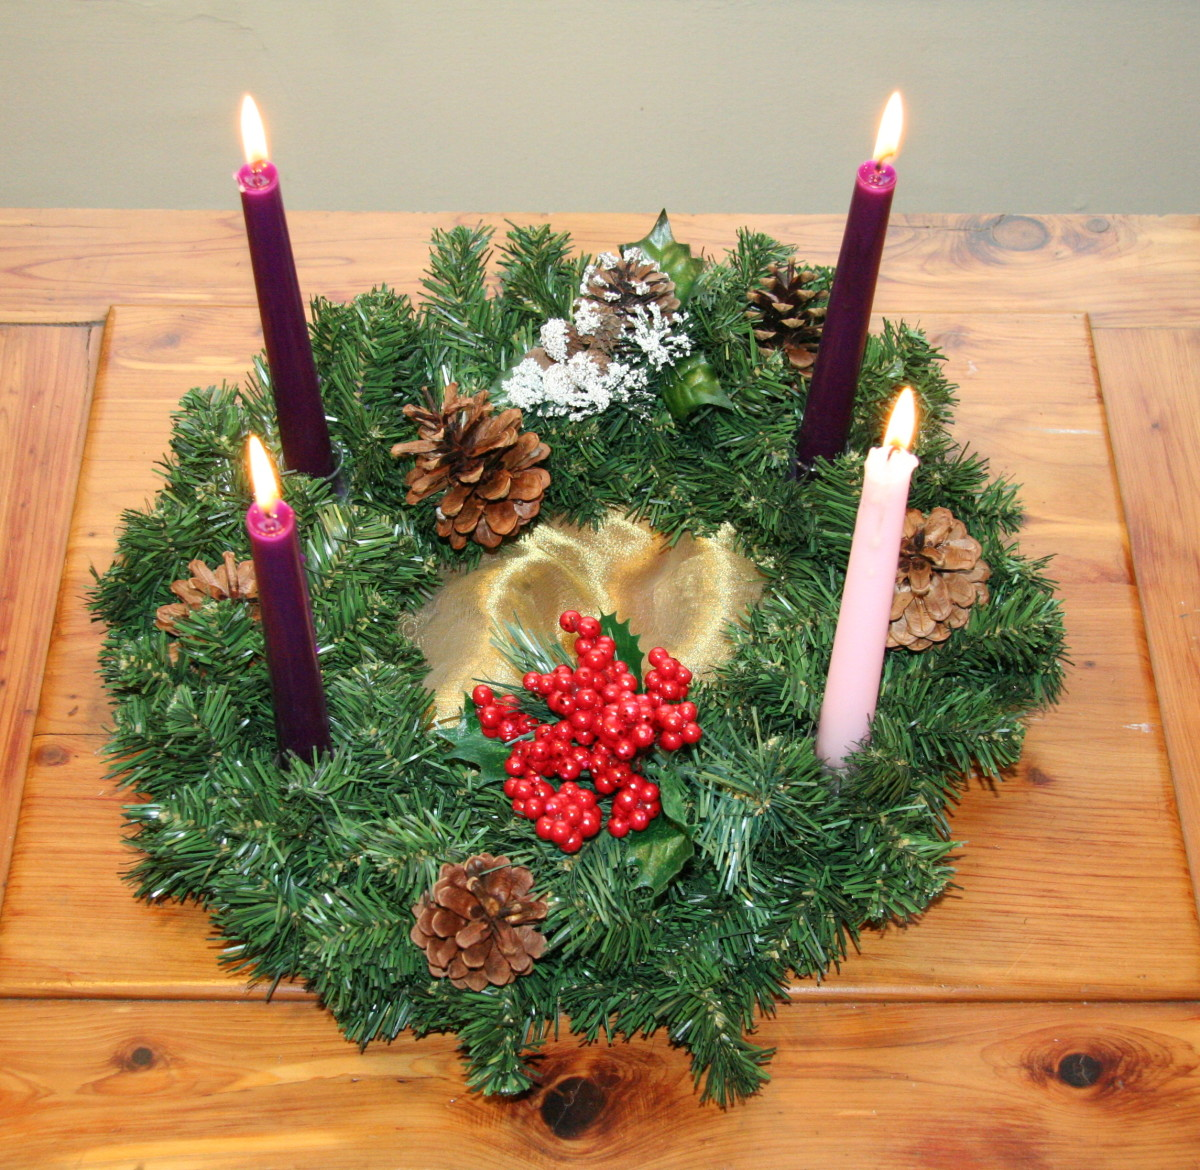 An advent wreath in the traditional Catholic colors. Most of Advent is purple for penitence, with a break in the third week for the rose light of joy.